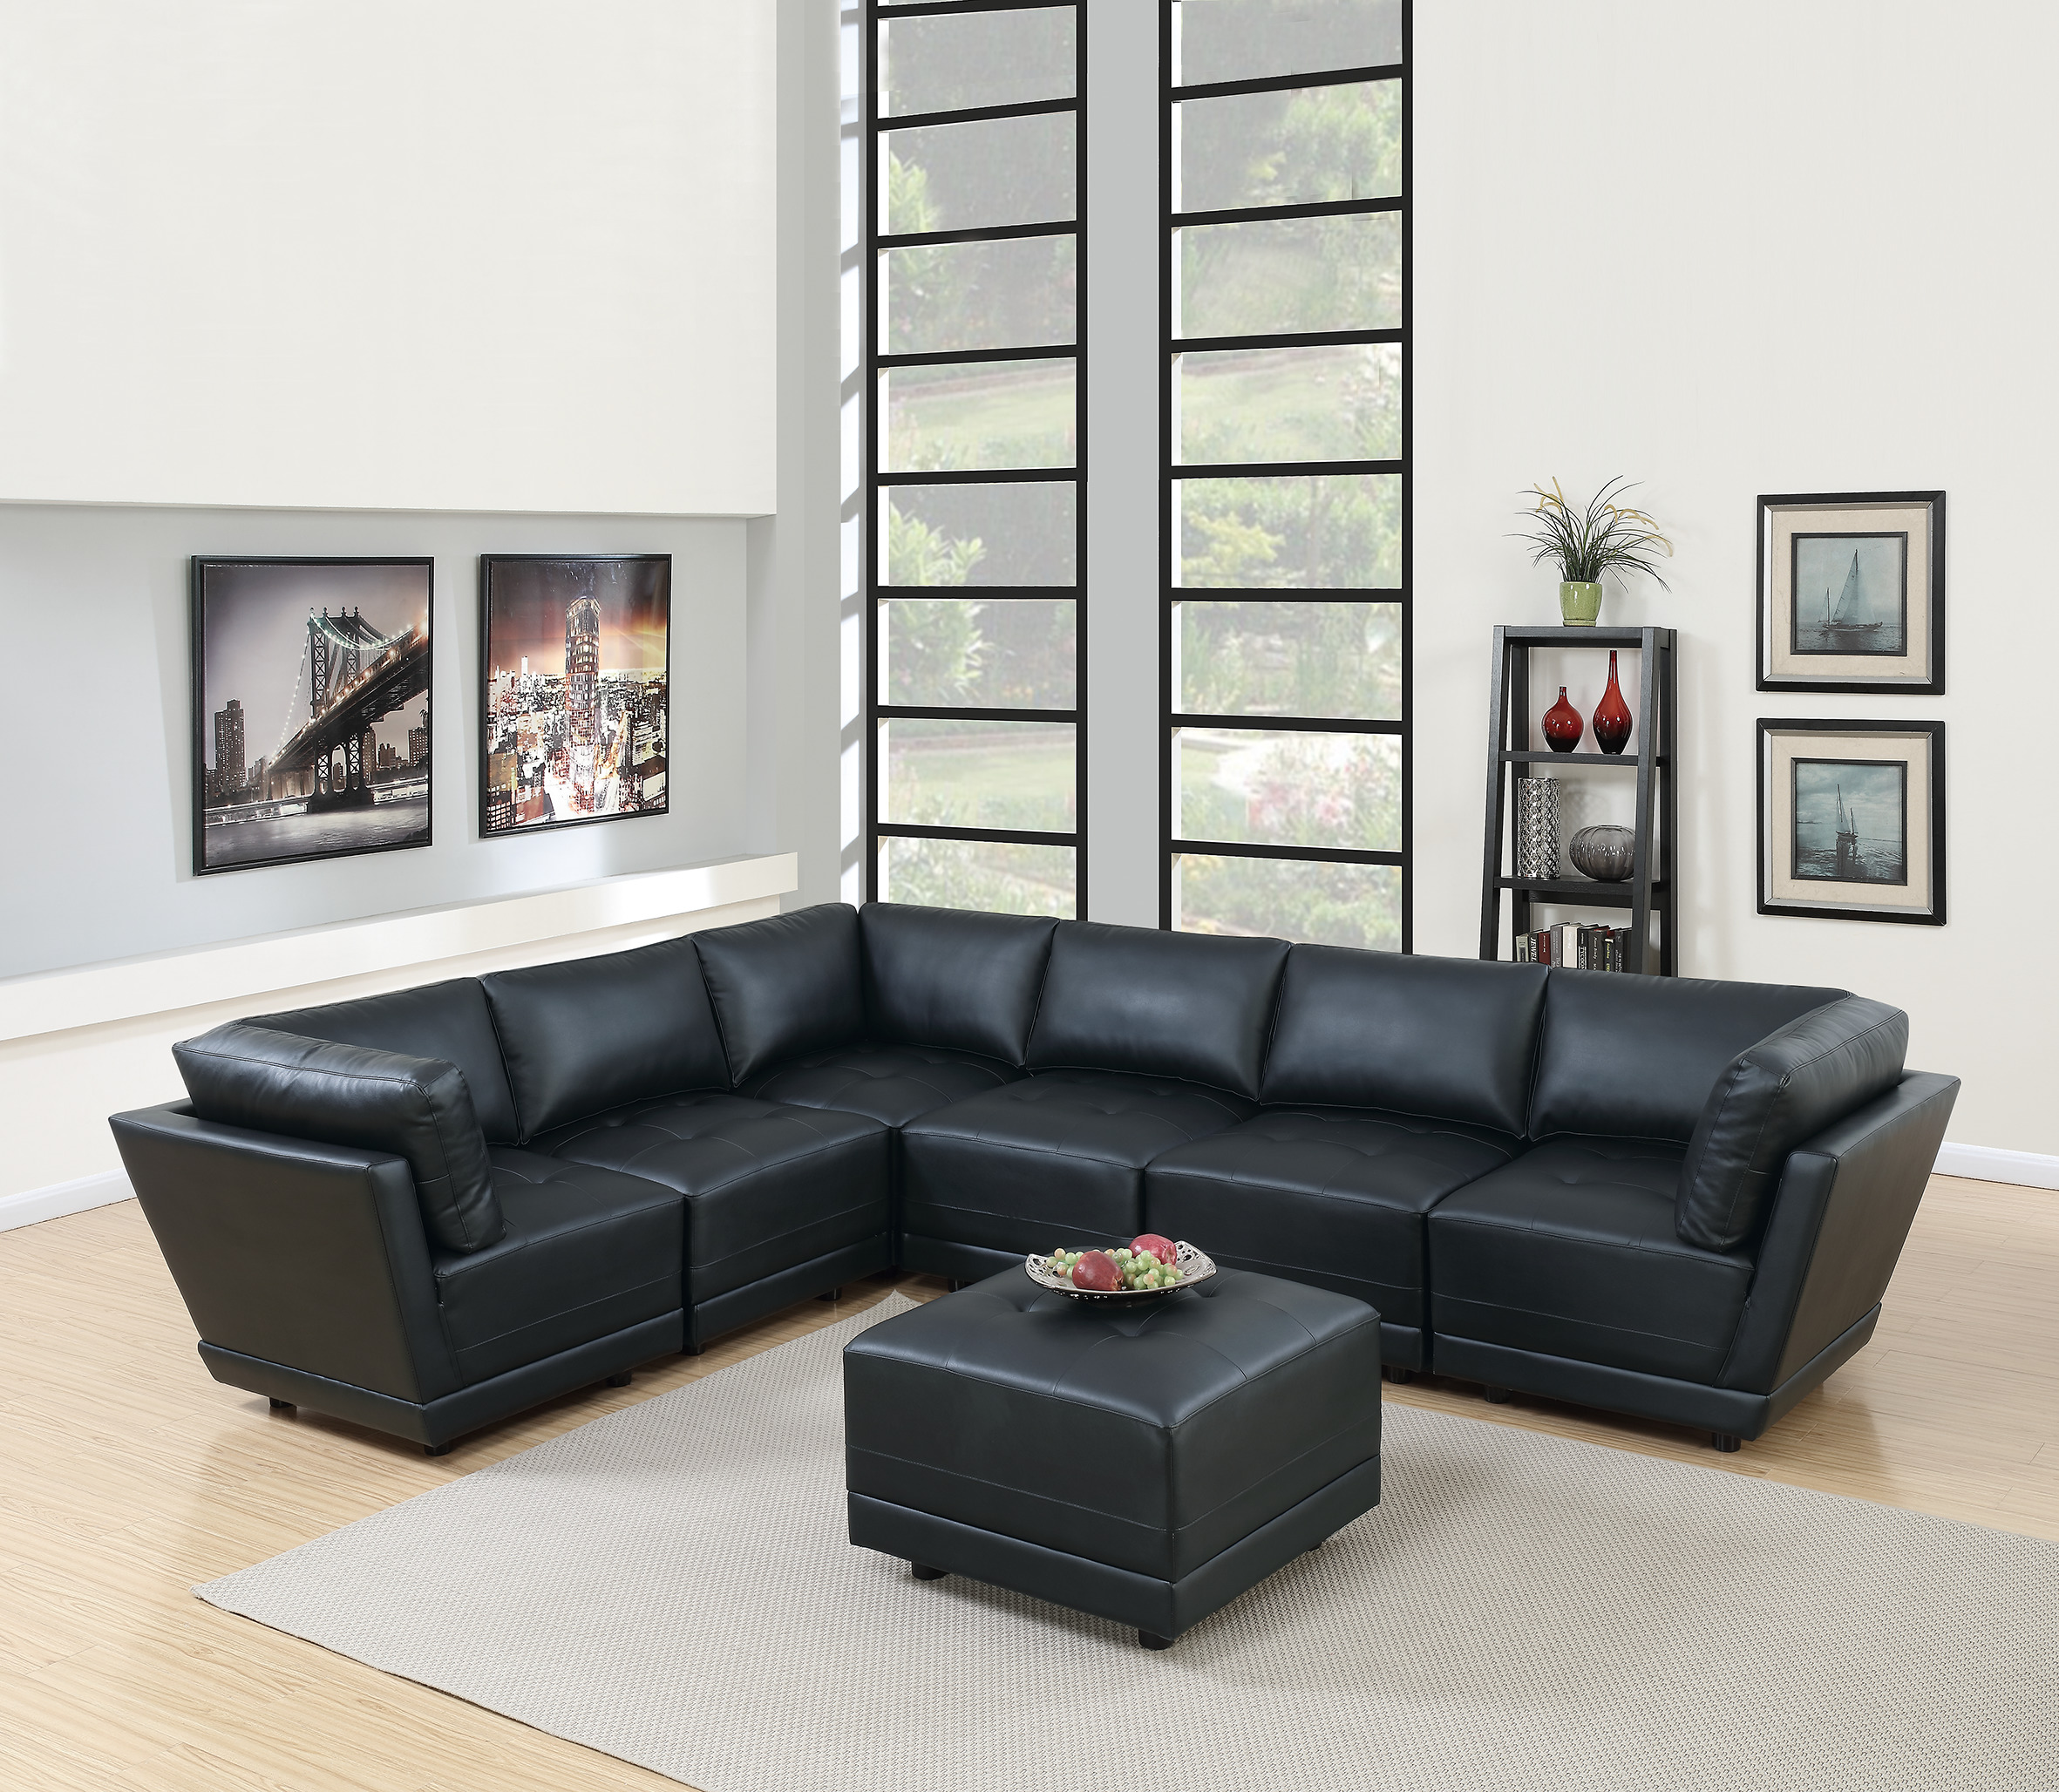 Living room furniture black bonded leather sectional sofa 7pc set tufted couch seat 3 corner wedge 3 armless chairs and an ottoman walmart com